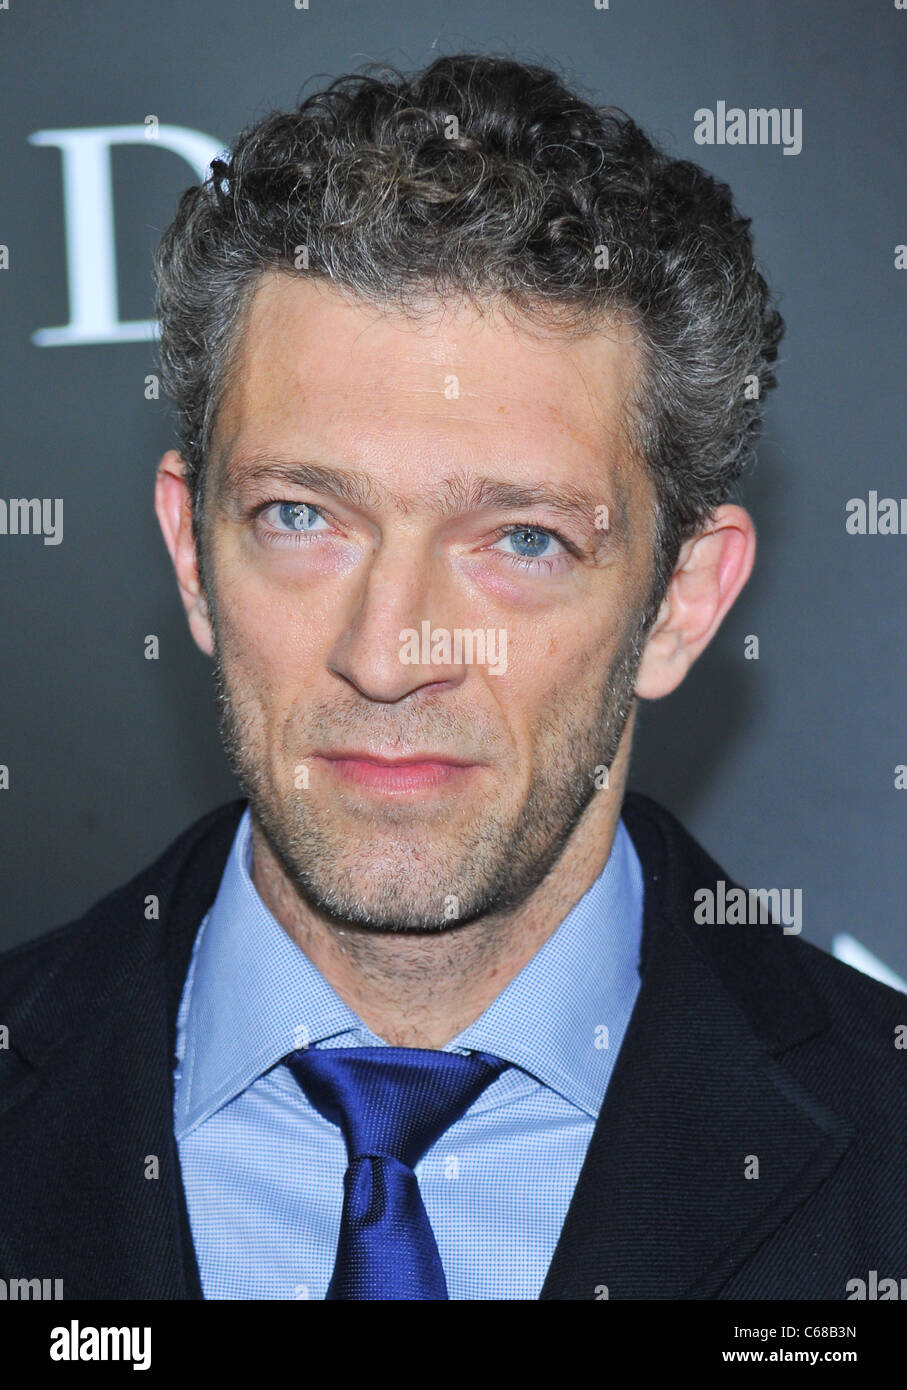 Vincent Cassell at arrivals for BLACK SWAN Premiere, The Ziegfeld Theatre, New York, NY November 30, 2010. Photo - Stock Image